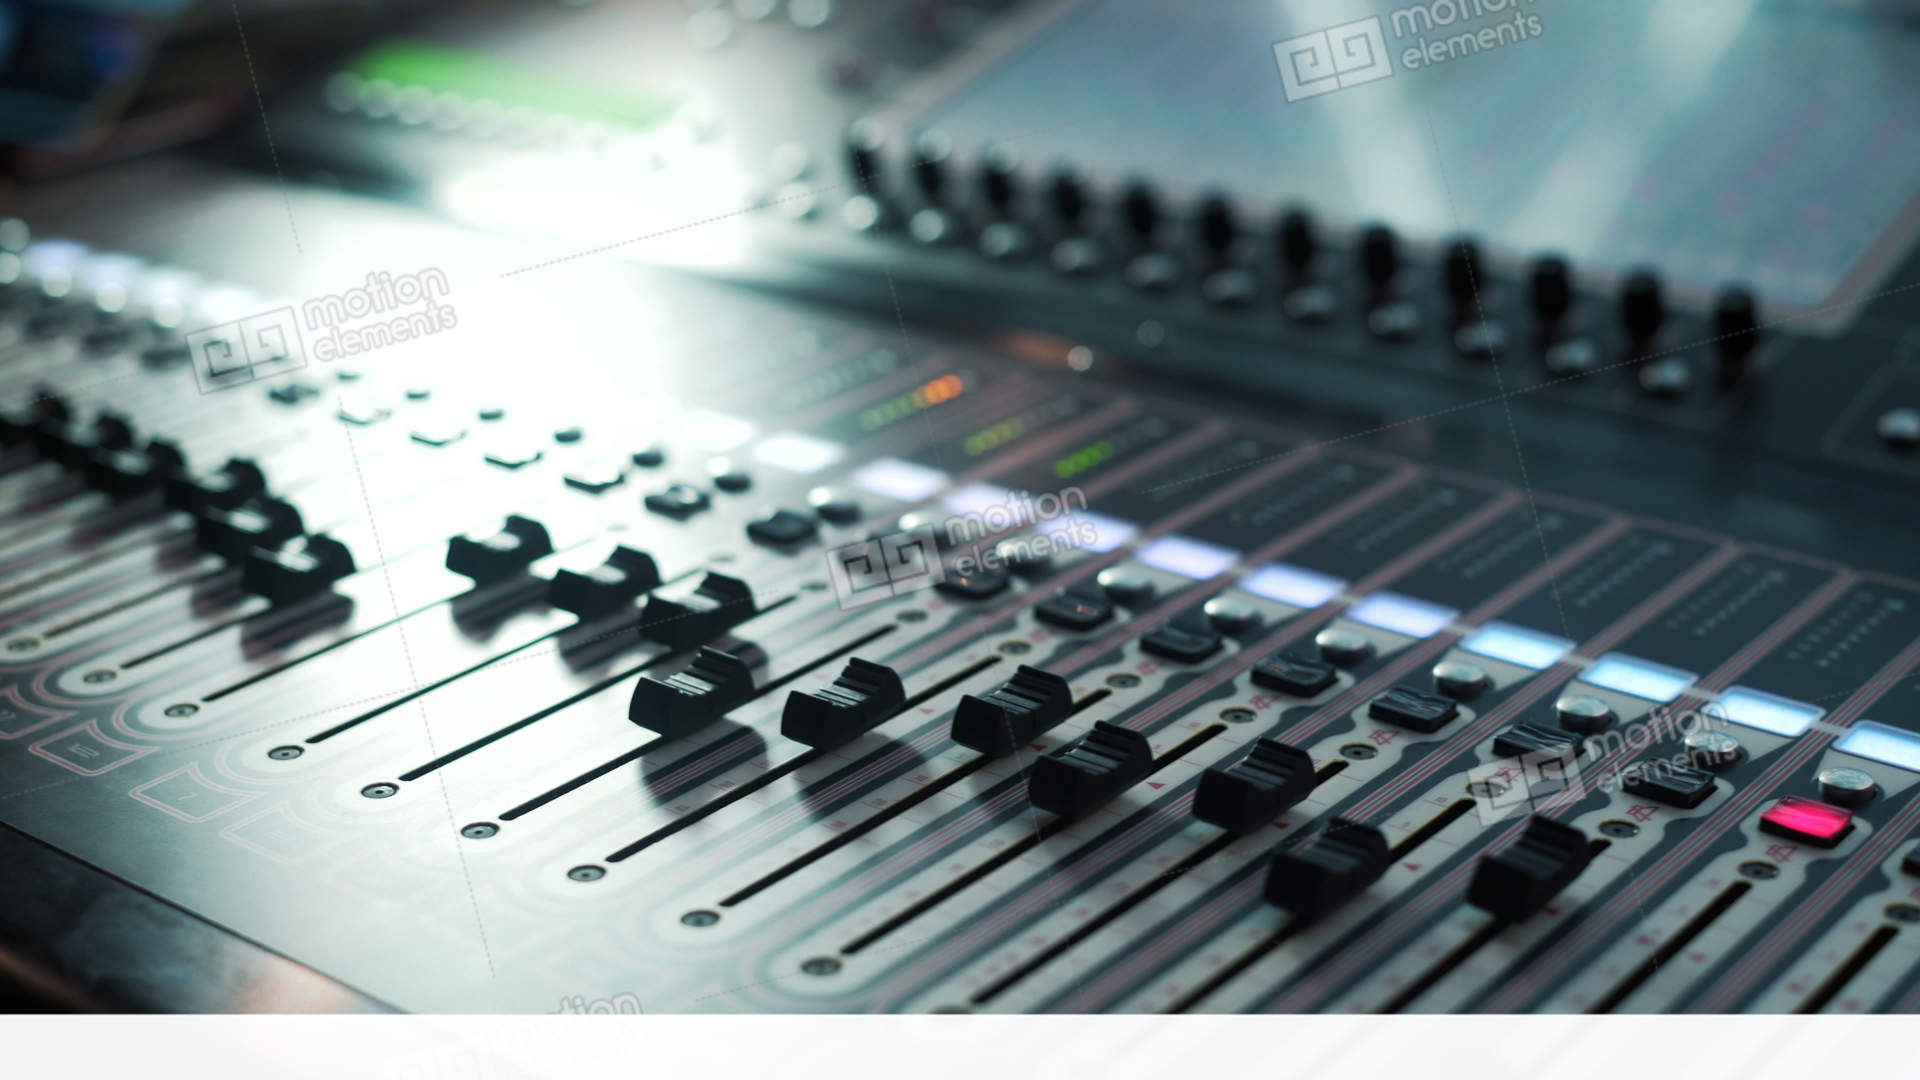 Download AudioDroid Audio Mix Studio APK for PC - Free Android Game